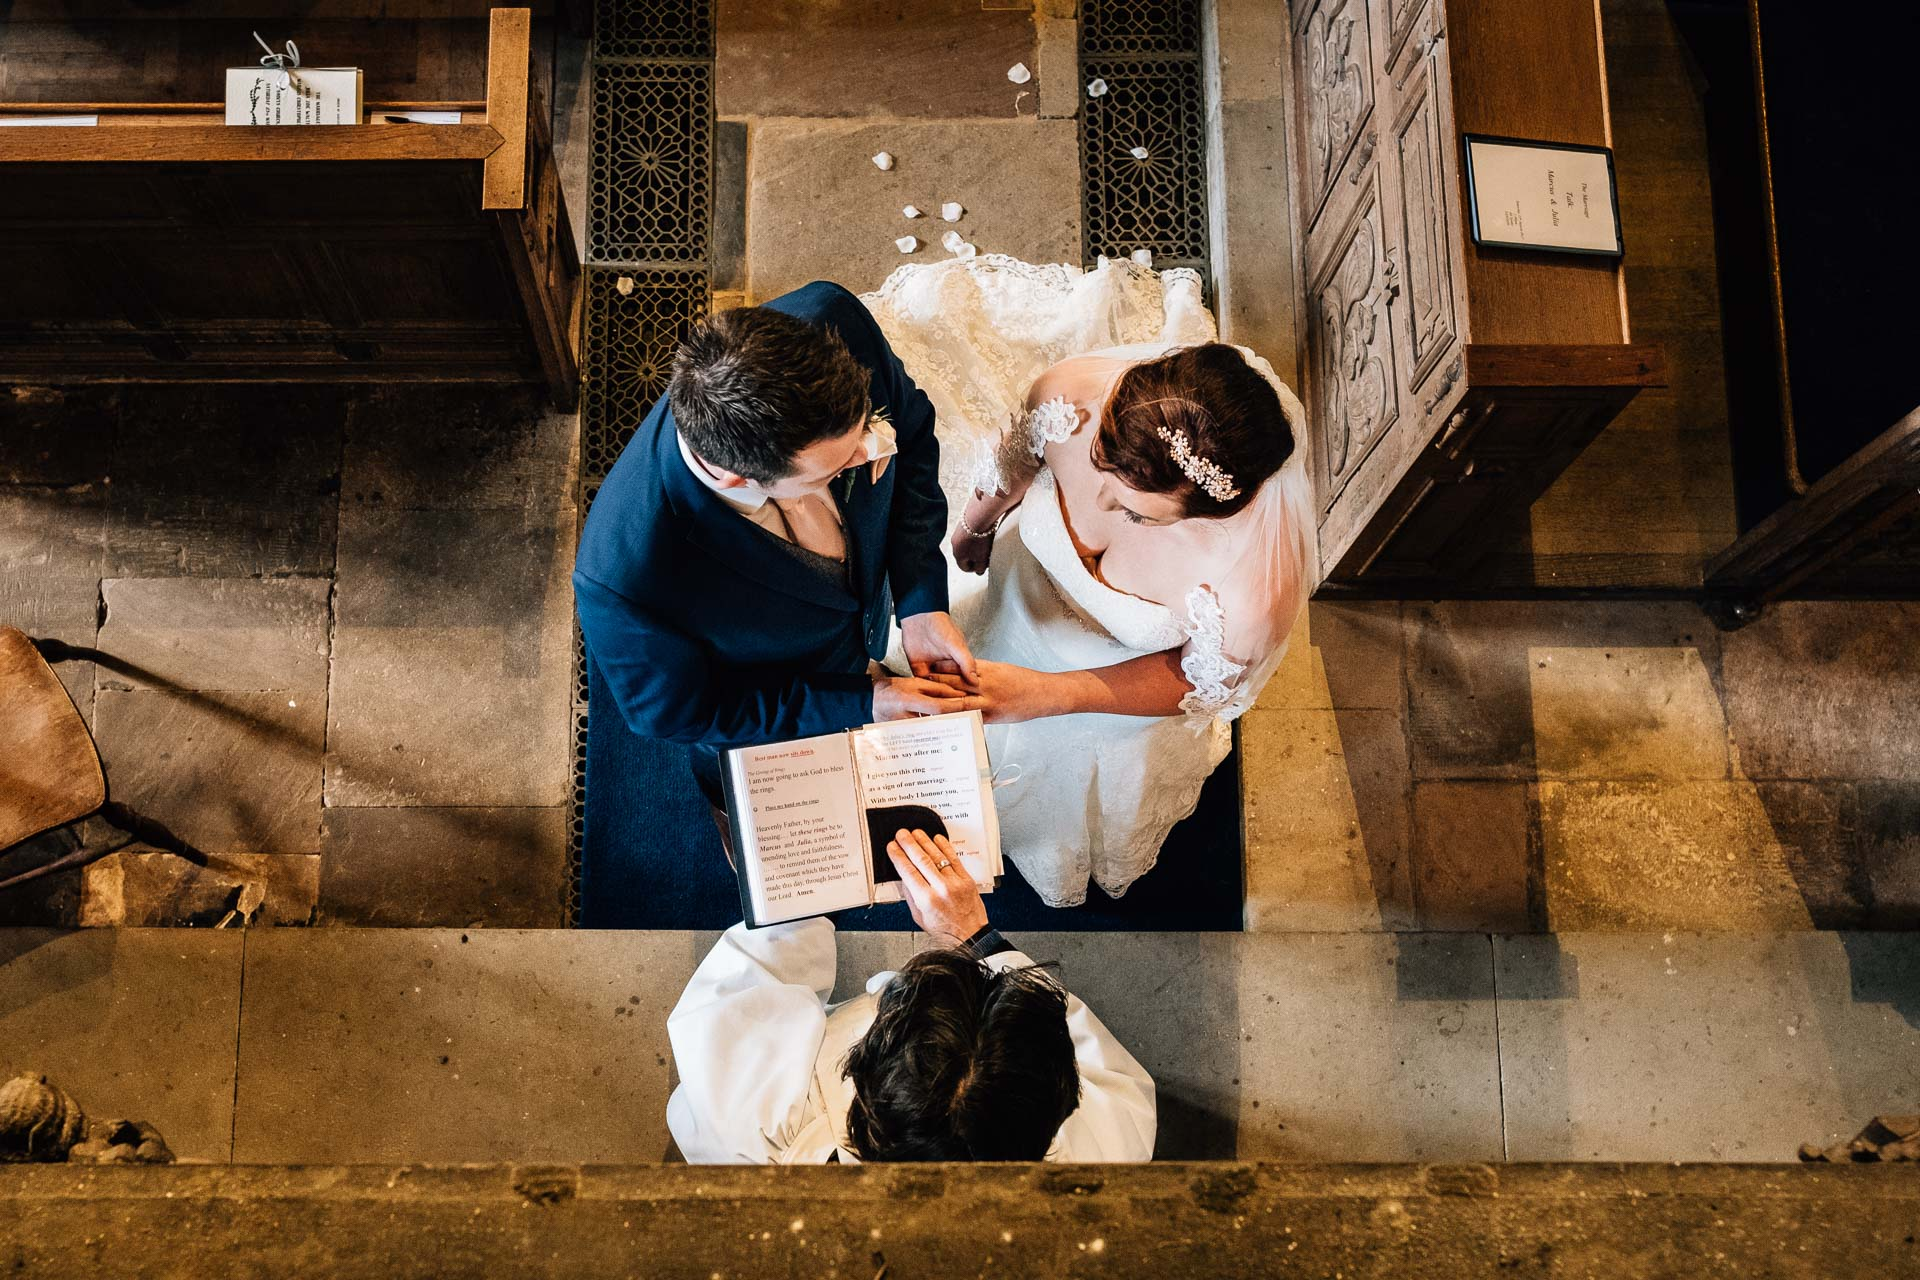 Sandon Hall Wedding Photography - J&M - exchanging vows shot from above